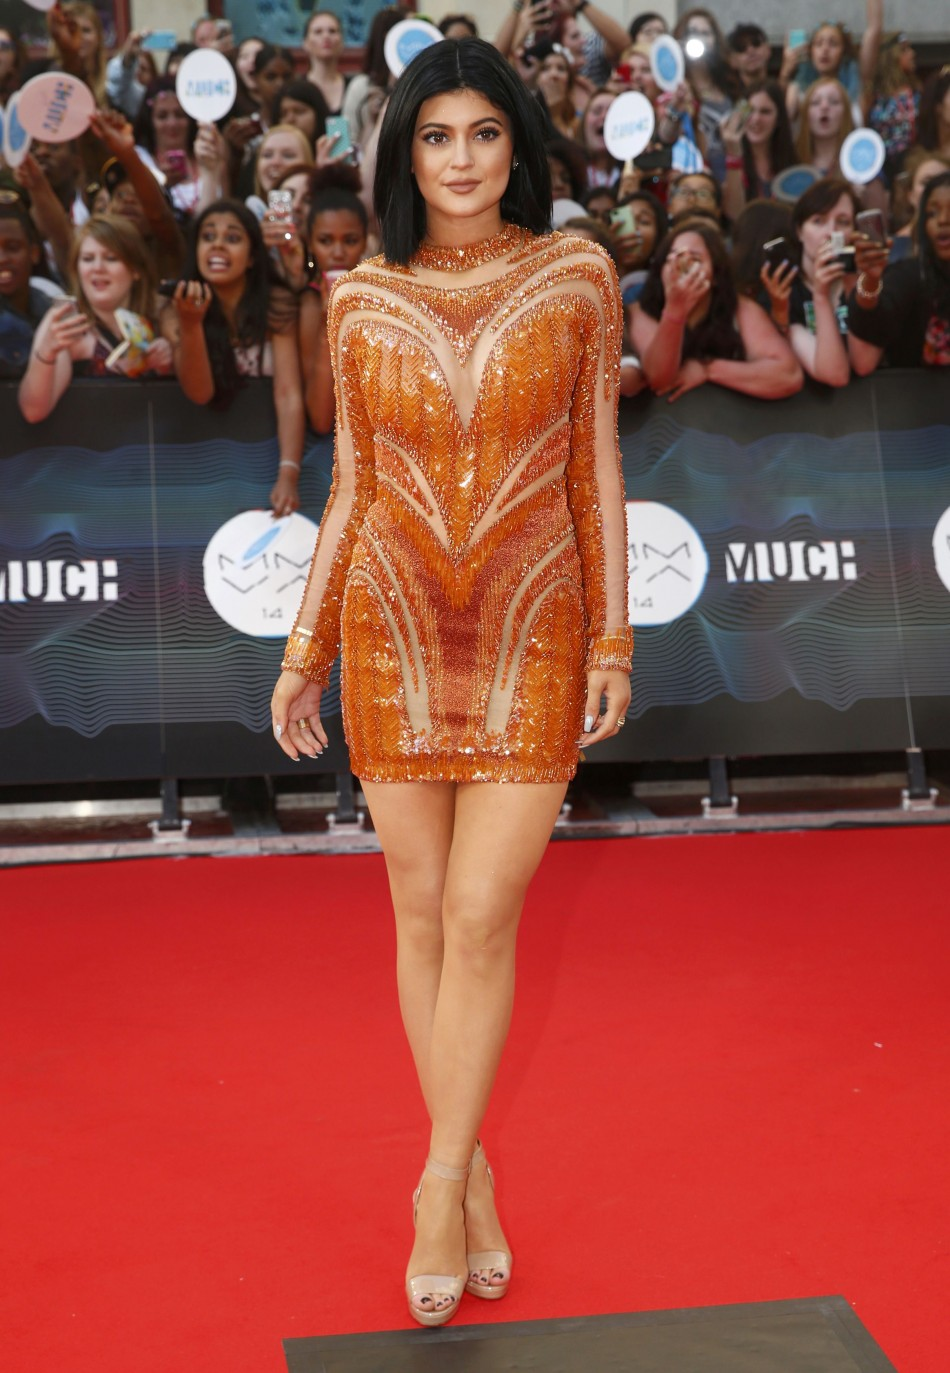 447741-kylie-jenner-arrives-on-the-red-carpet-to-host-the-muchmusic-video-awa.jpg